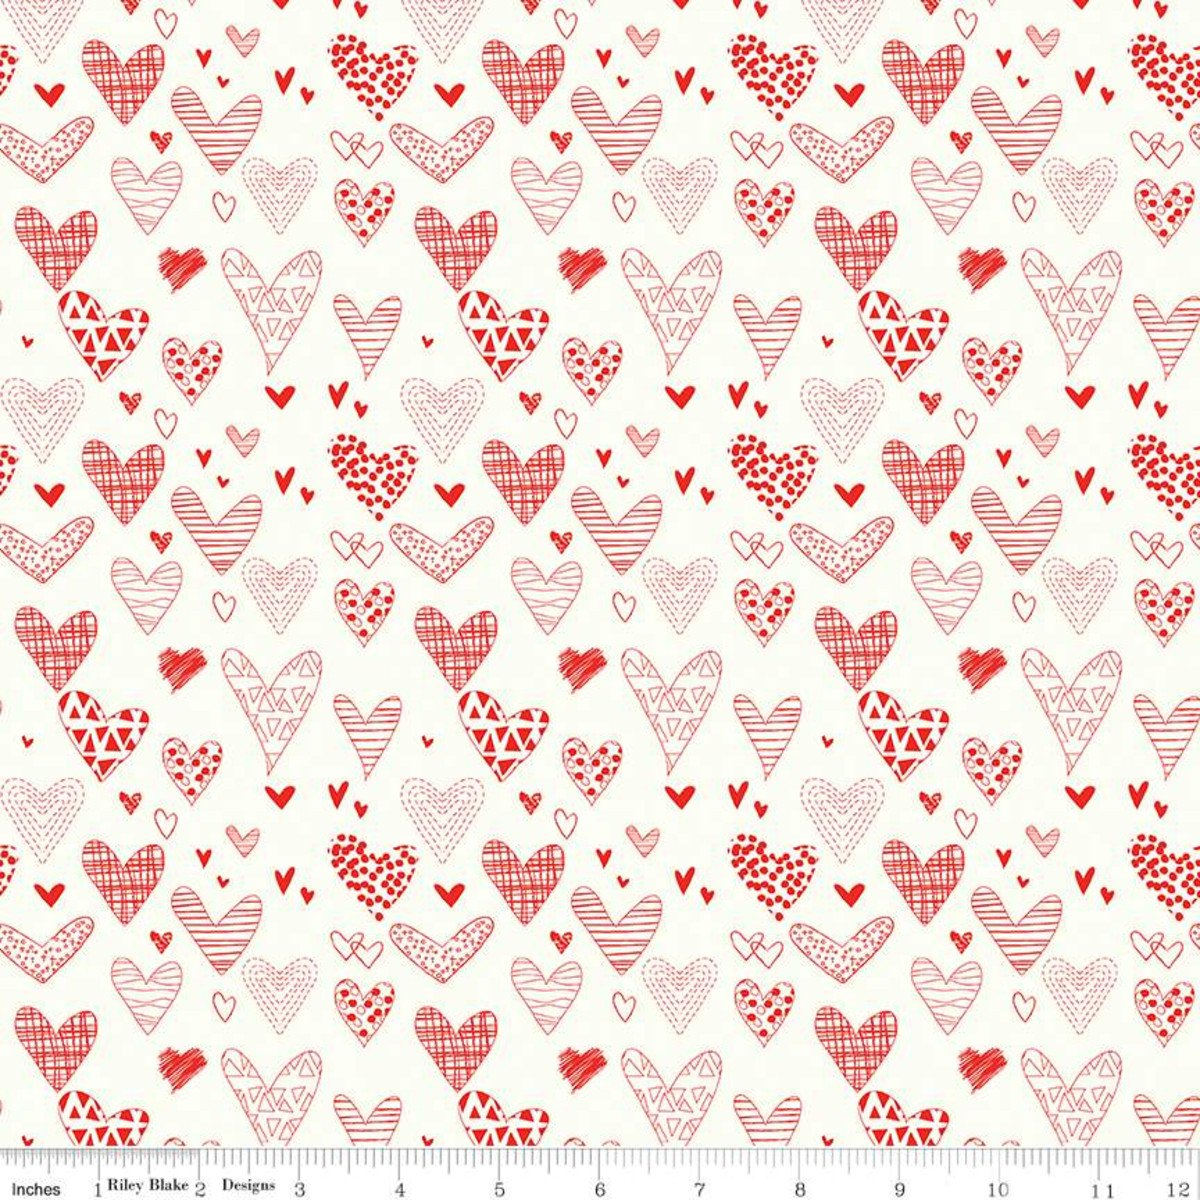 From The Heart - C10051-CREAM